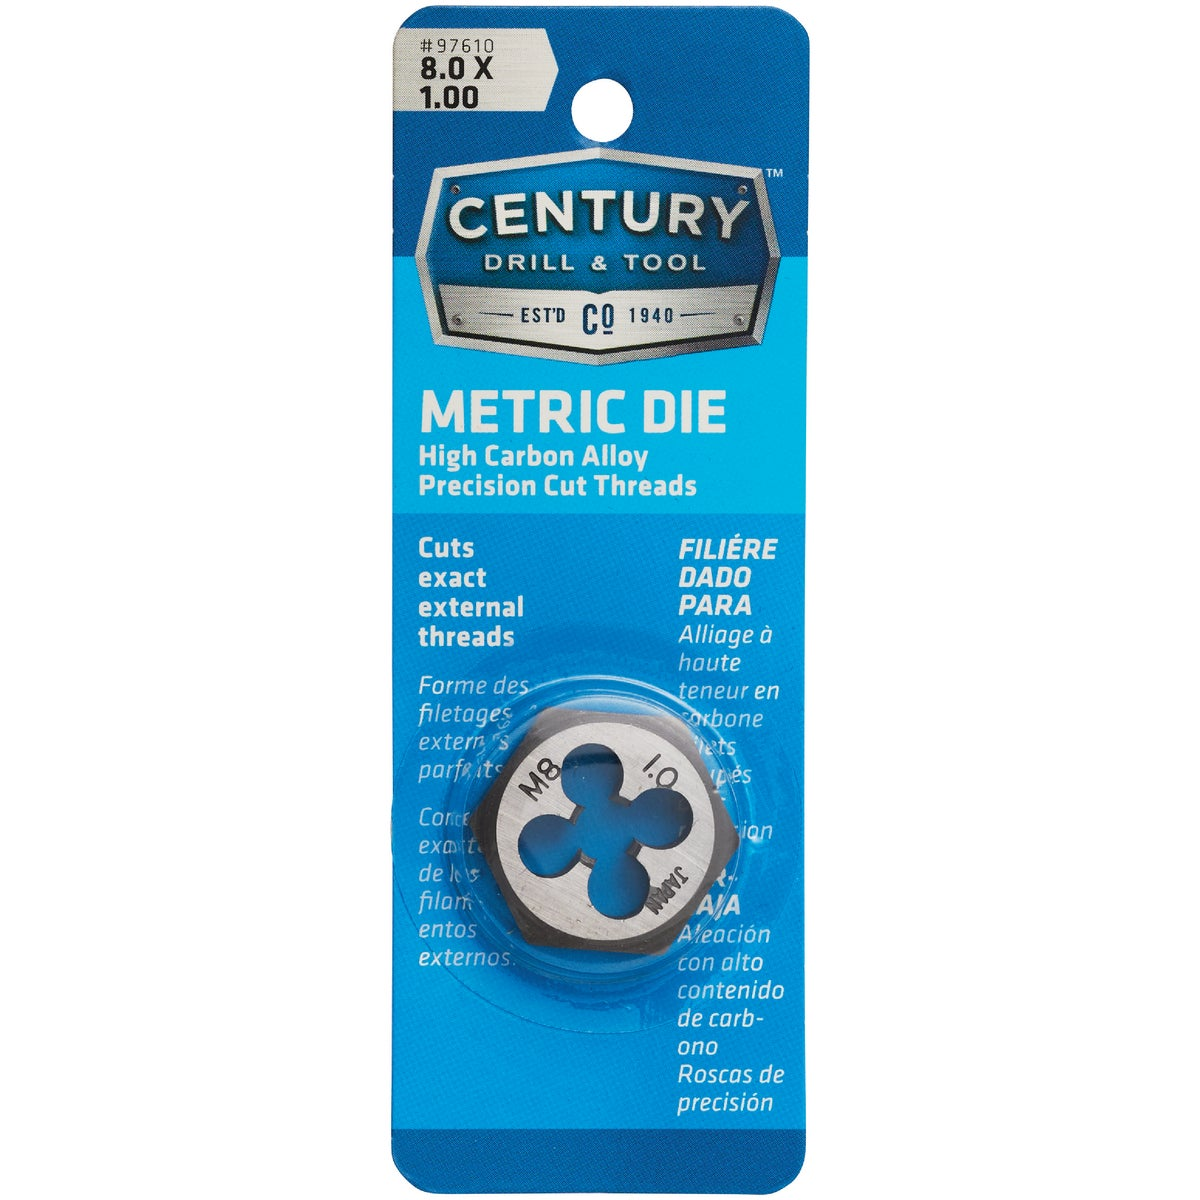 8MM-1.00 HEX DIE - 9733 by Irwin Industr Tool